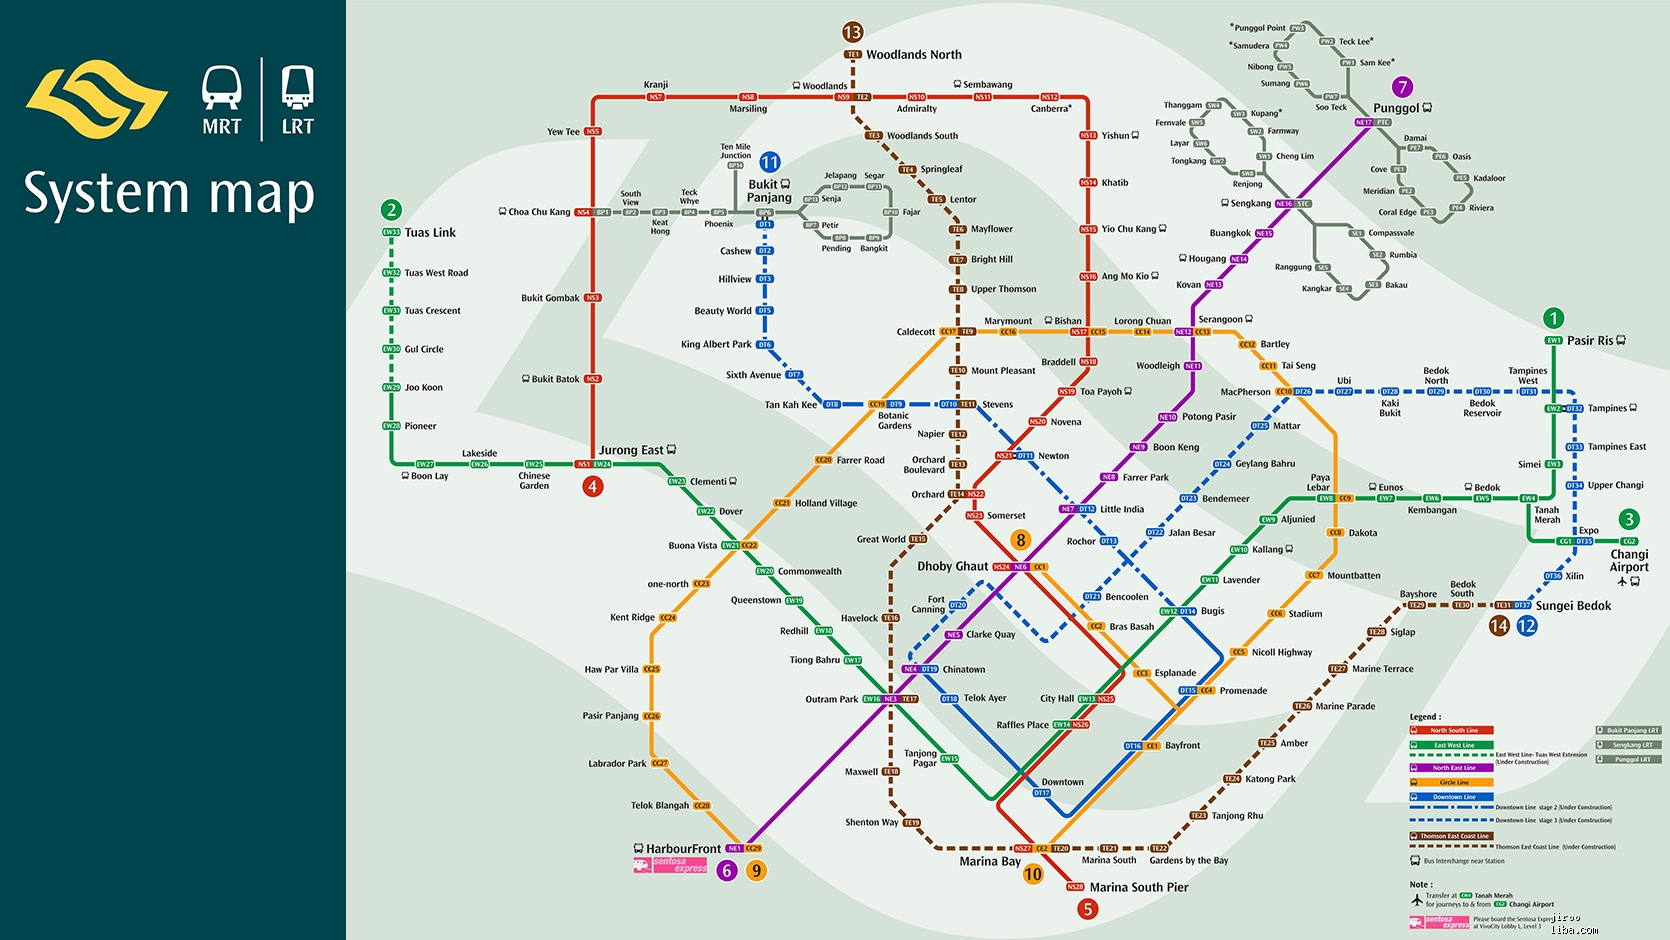 mrt-train-map.jpg